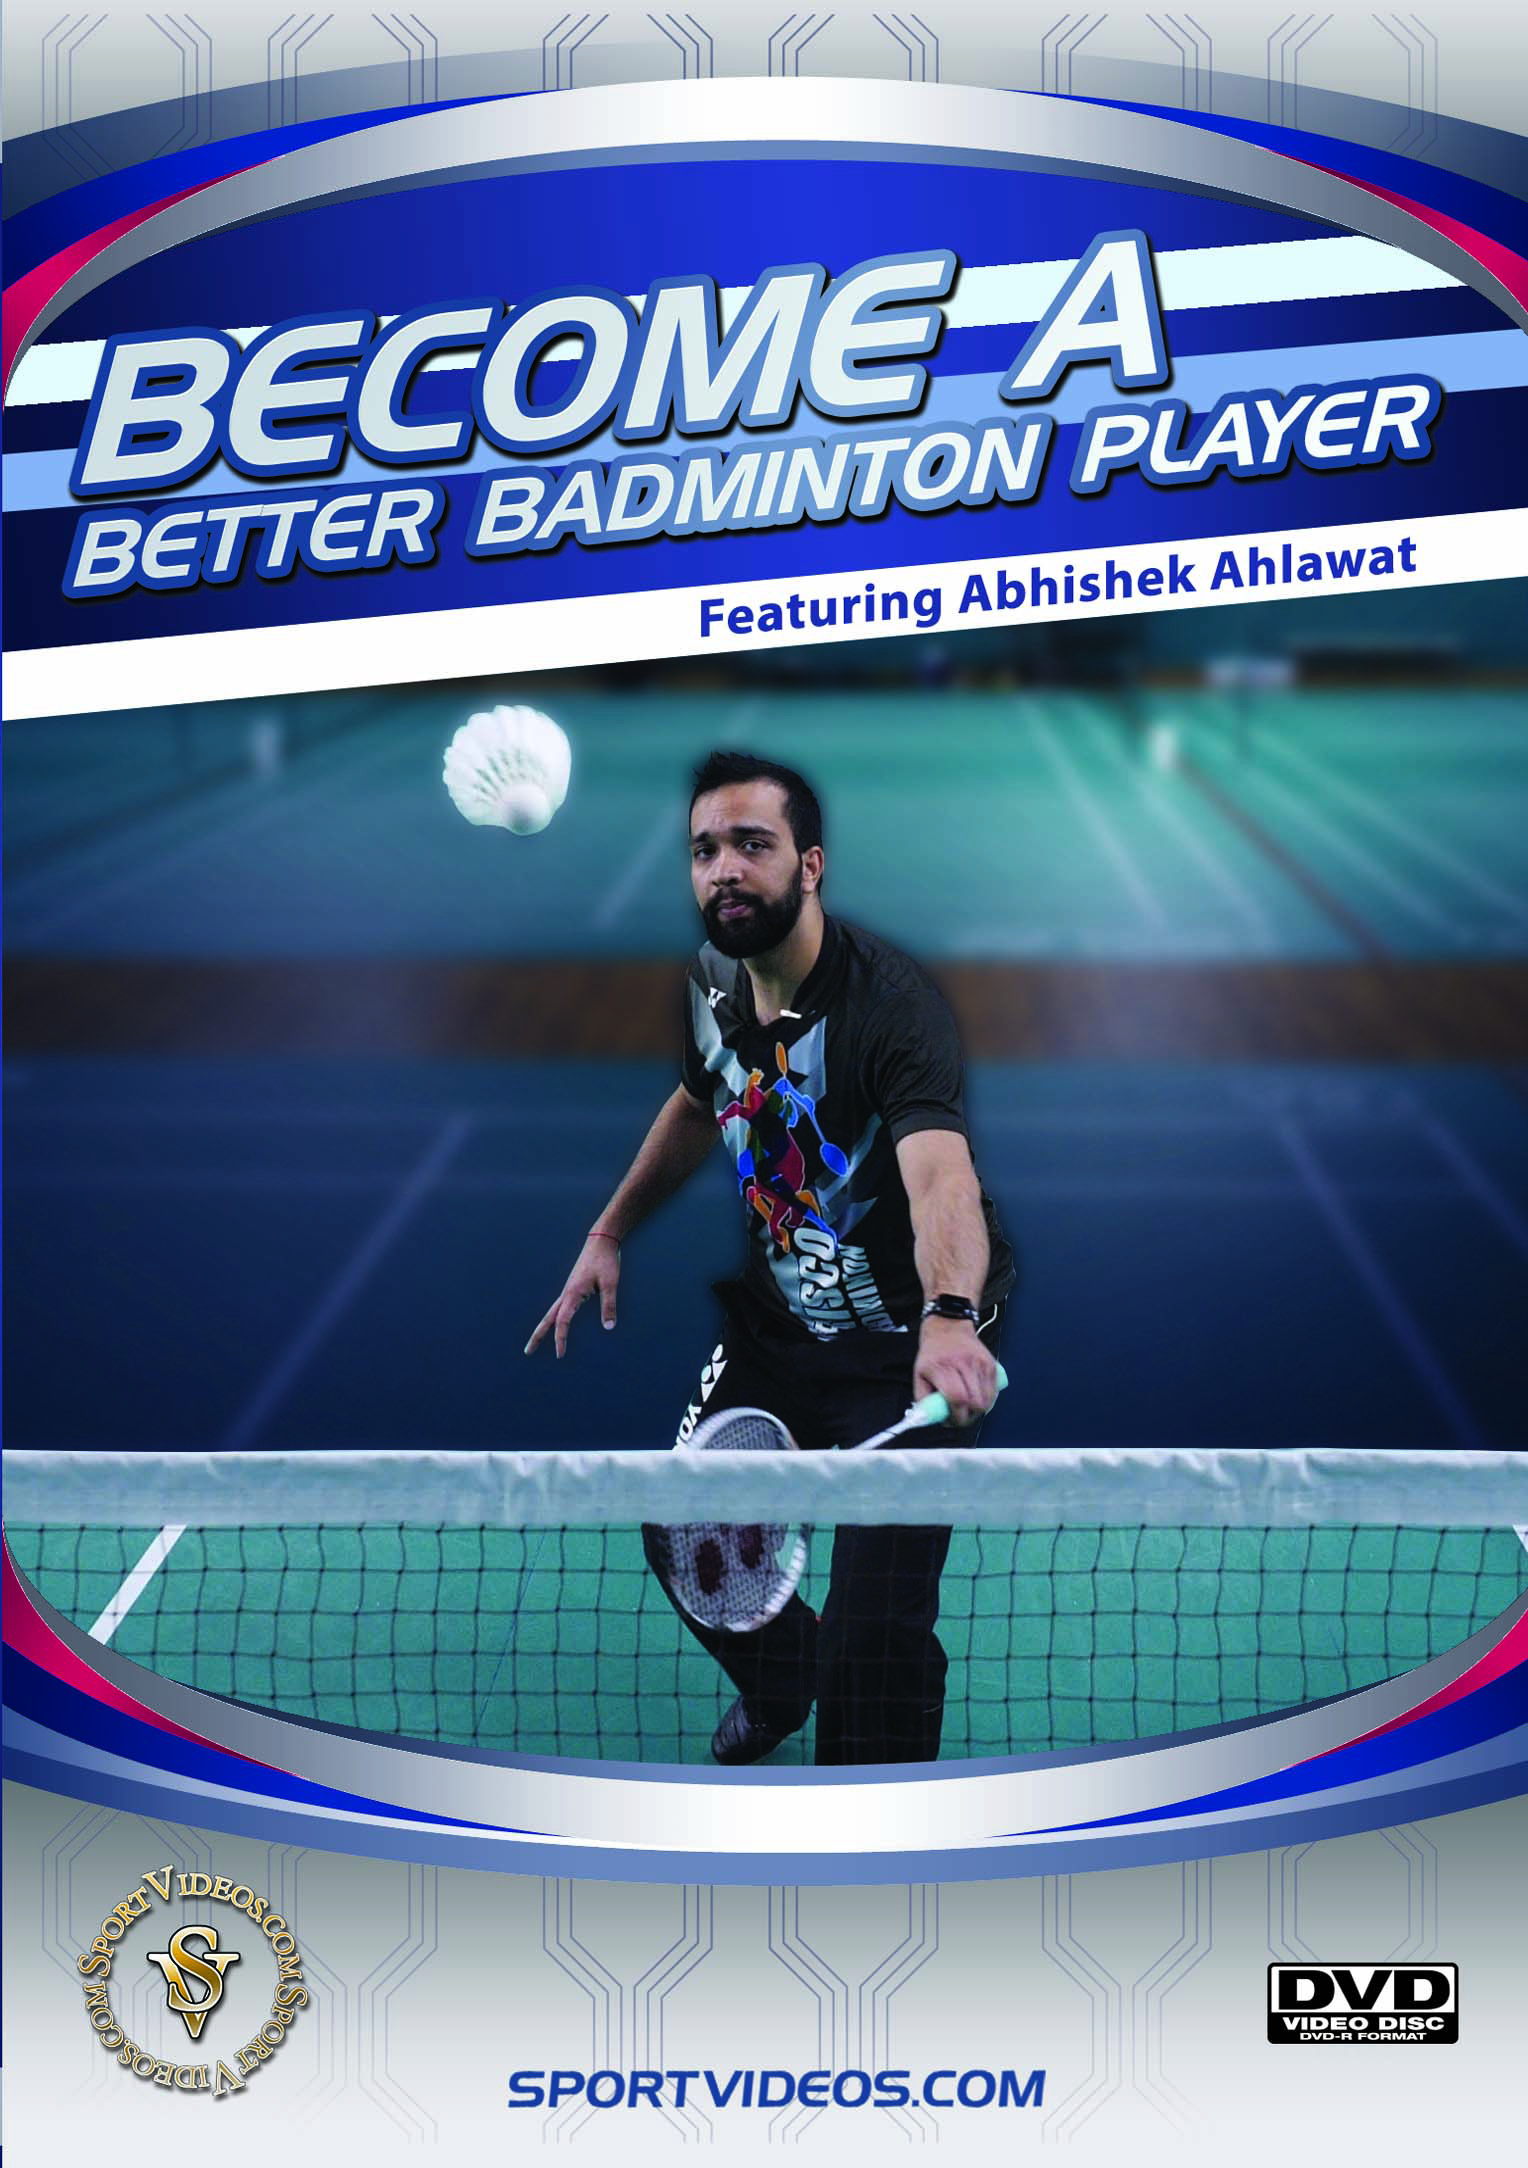 Become A Better Badminton Player DVD